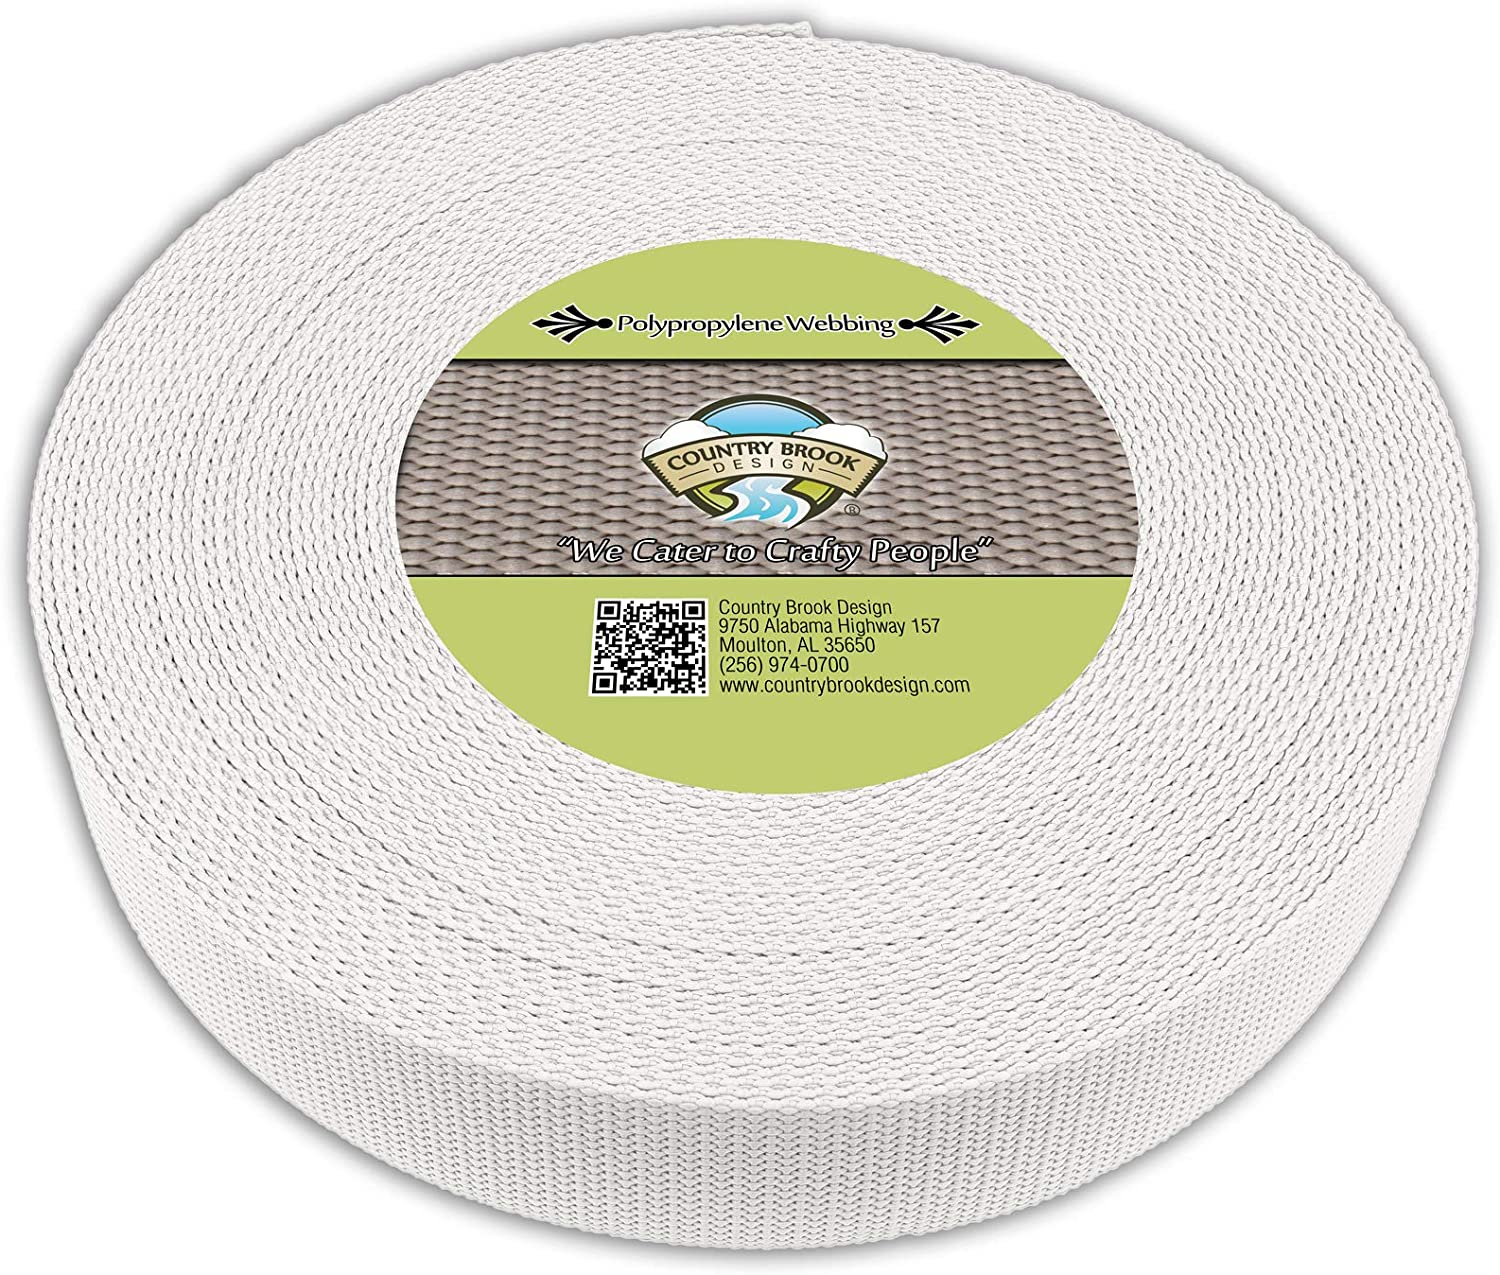 Country Challenge the lowest price of Japan Brook Safety and trust Design - White 2 Polypropylene Webbing Inch